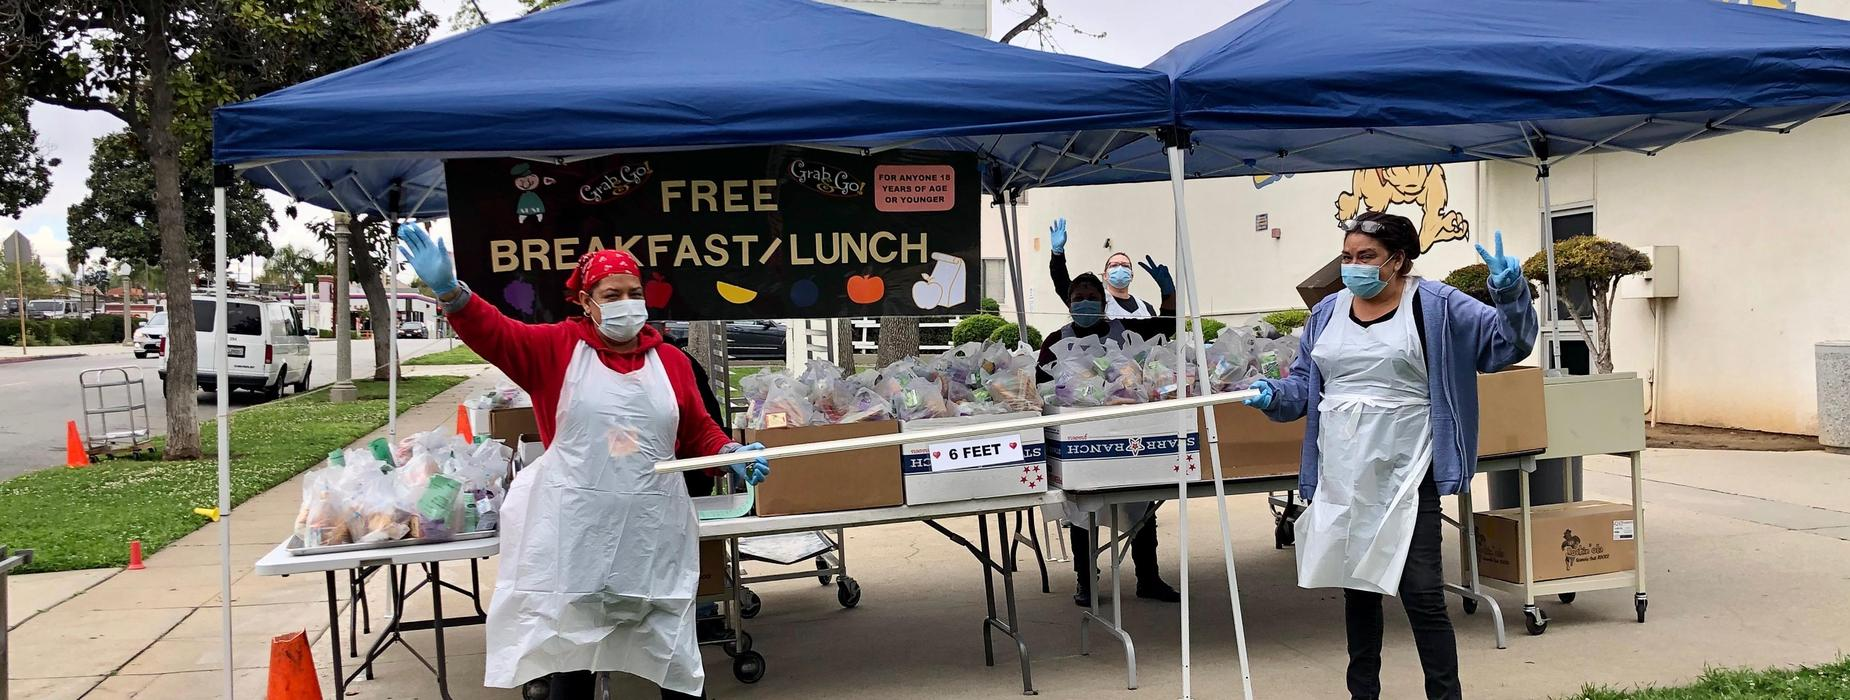 Food and Nutrition Heroes serving breakfast and lunch